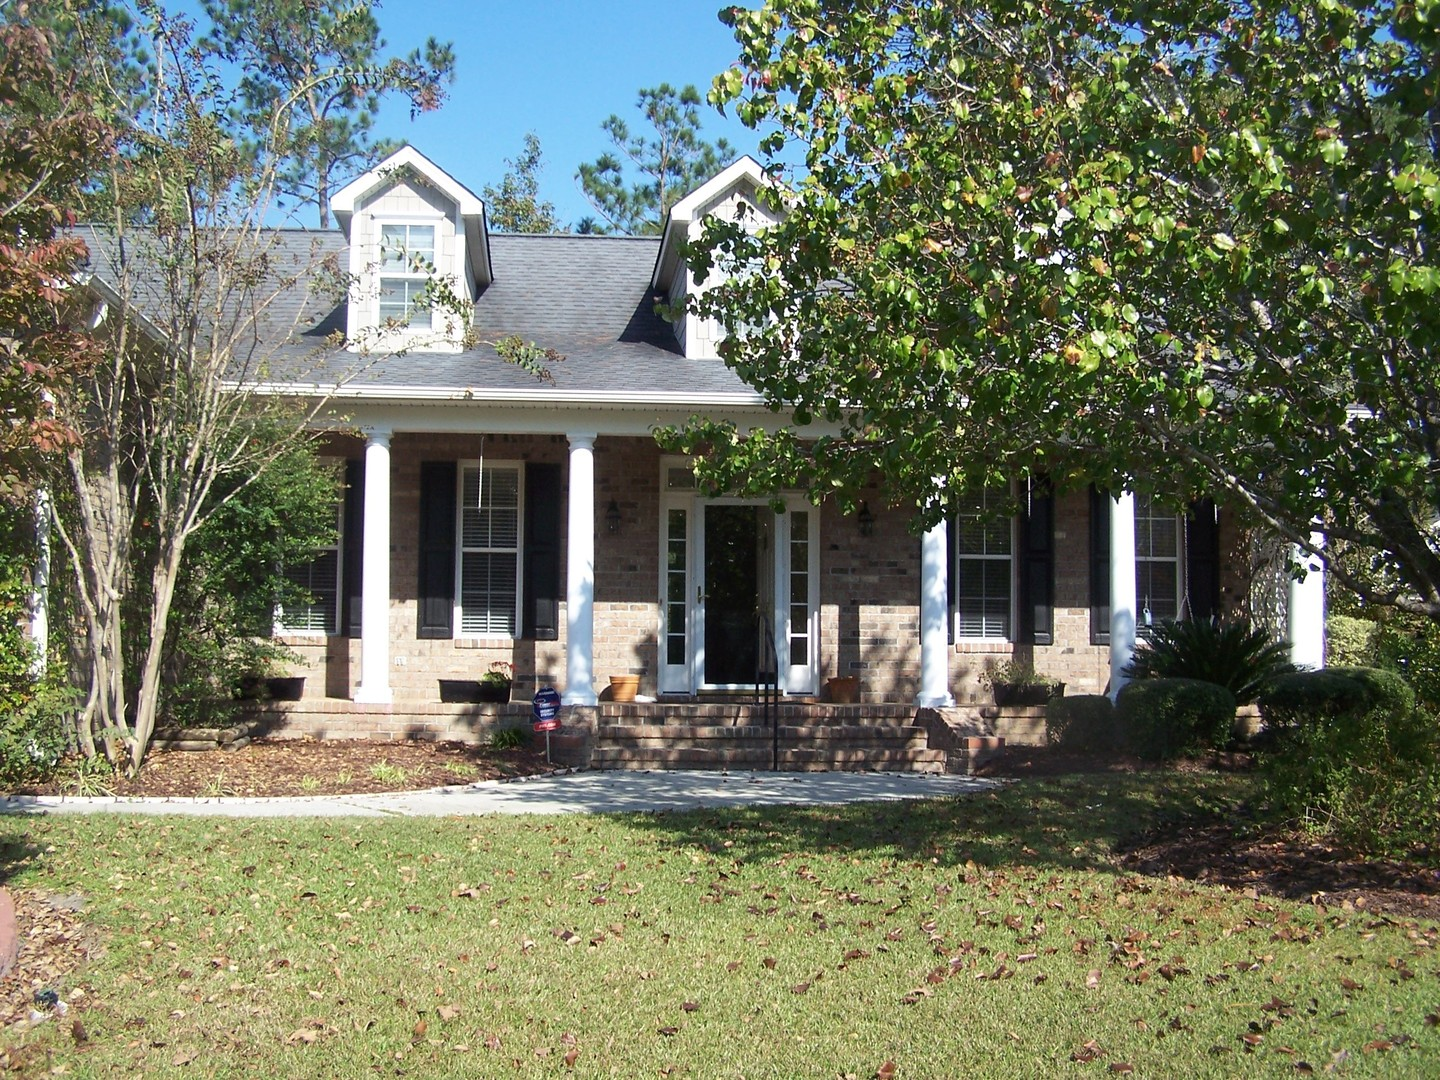 for rent in , located in Wilmington, NC, listed by Wilmington's Best Rentals.